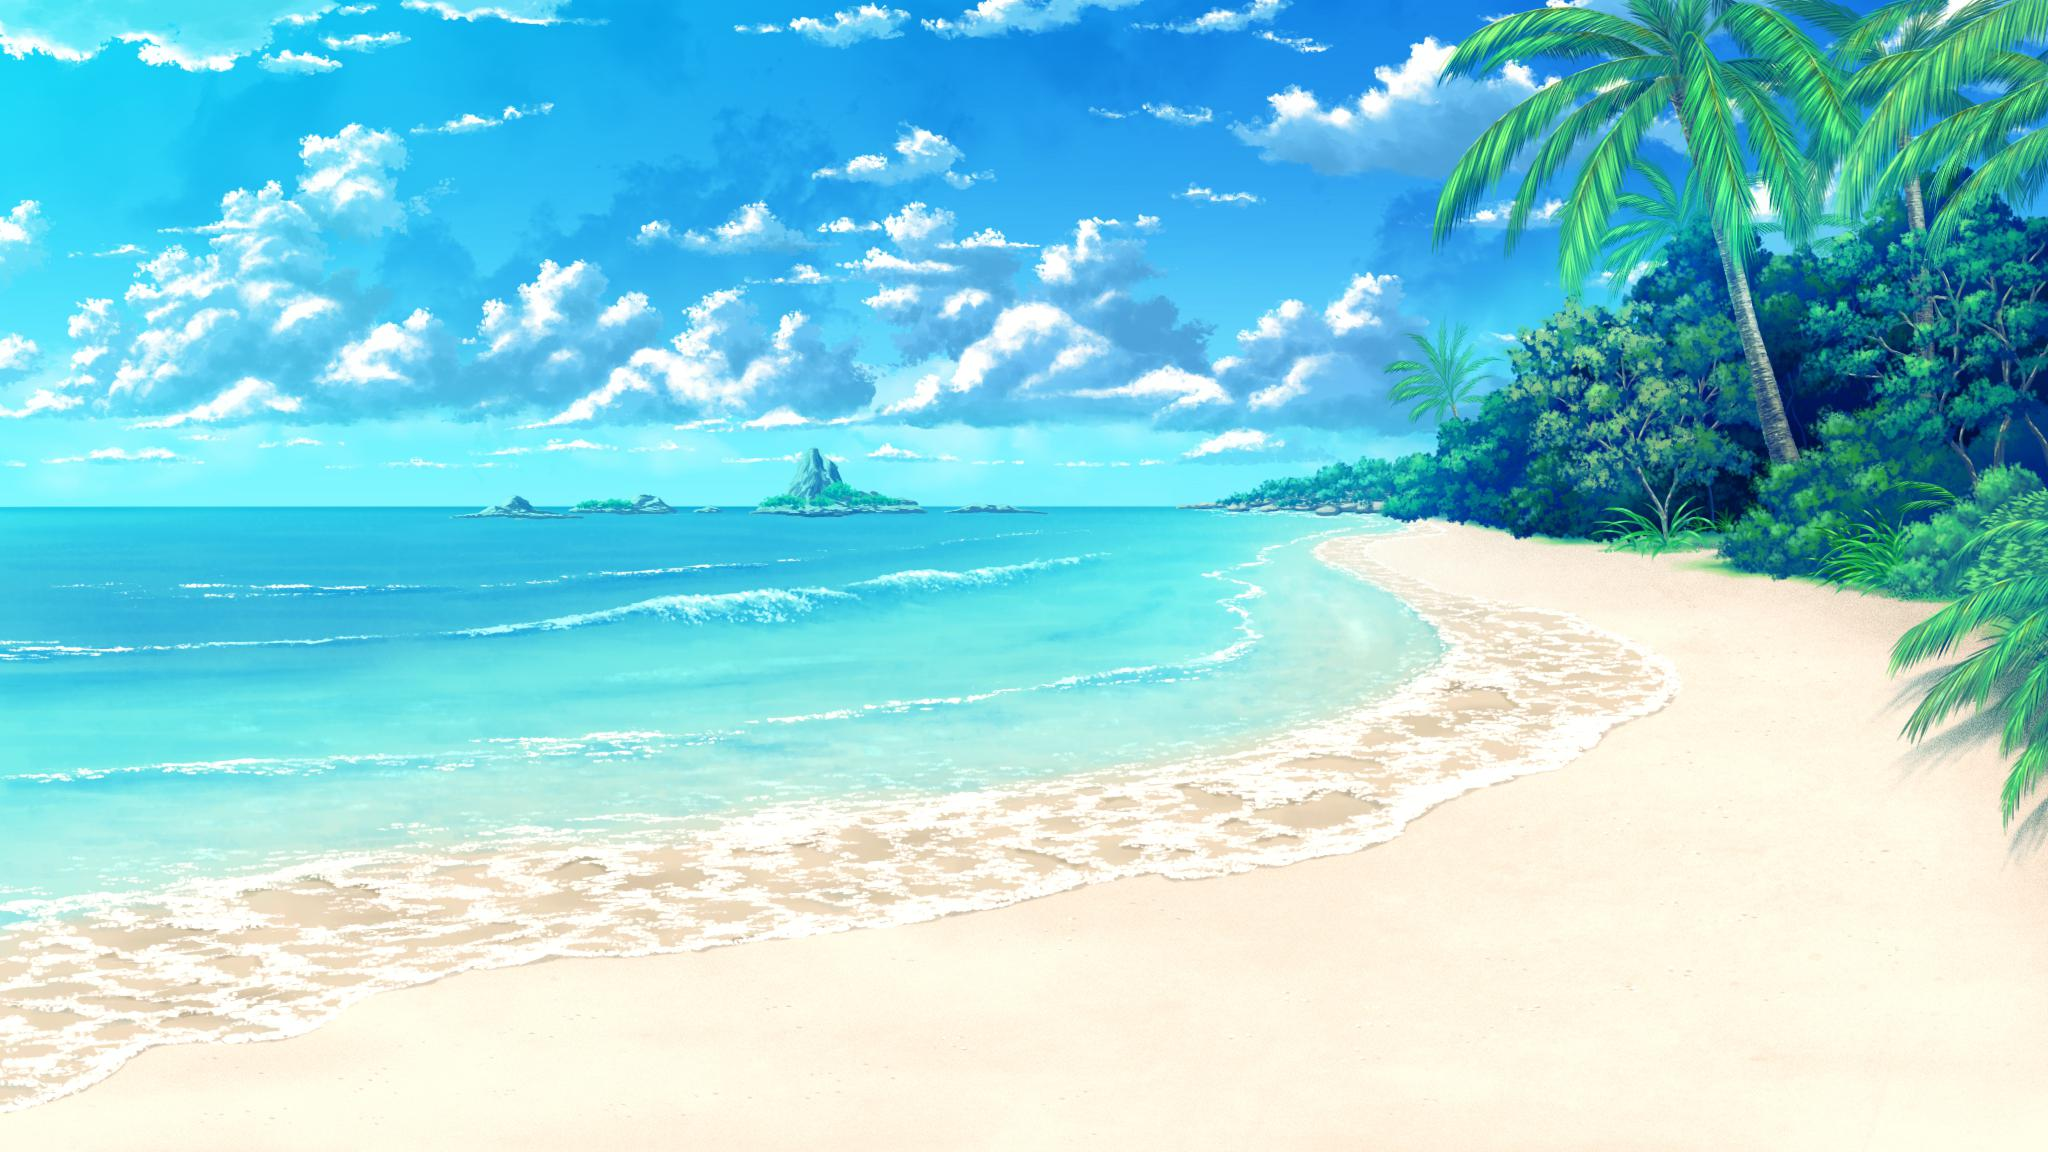 Beach Backgrounds Yeterwpartco